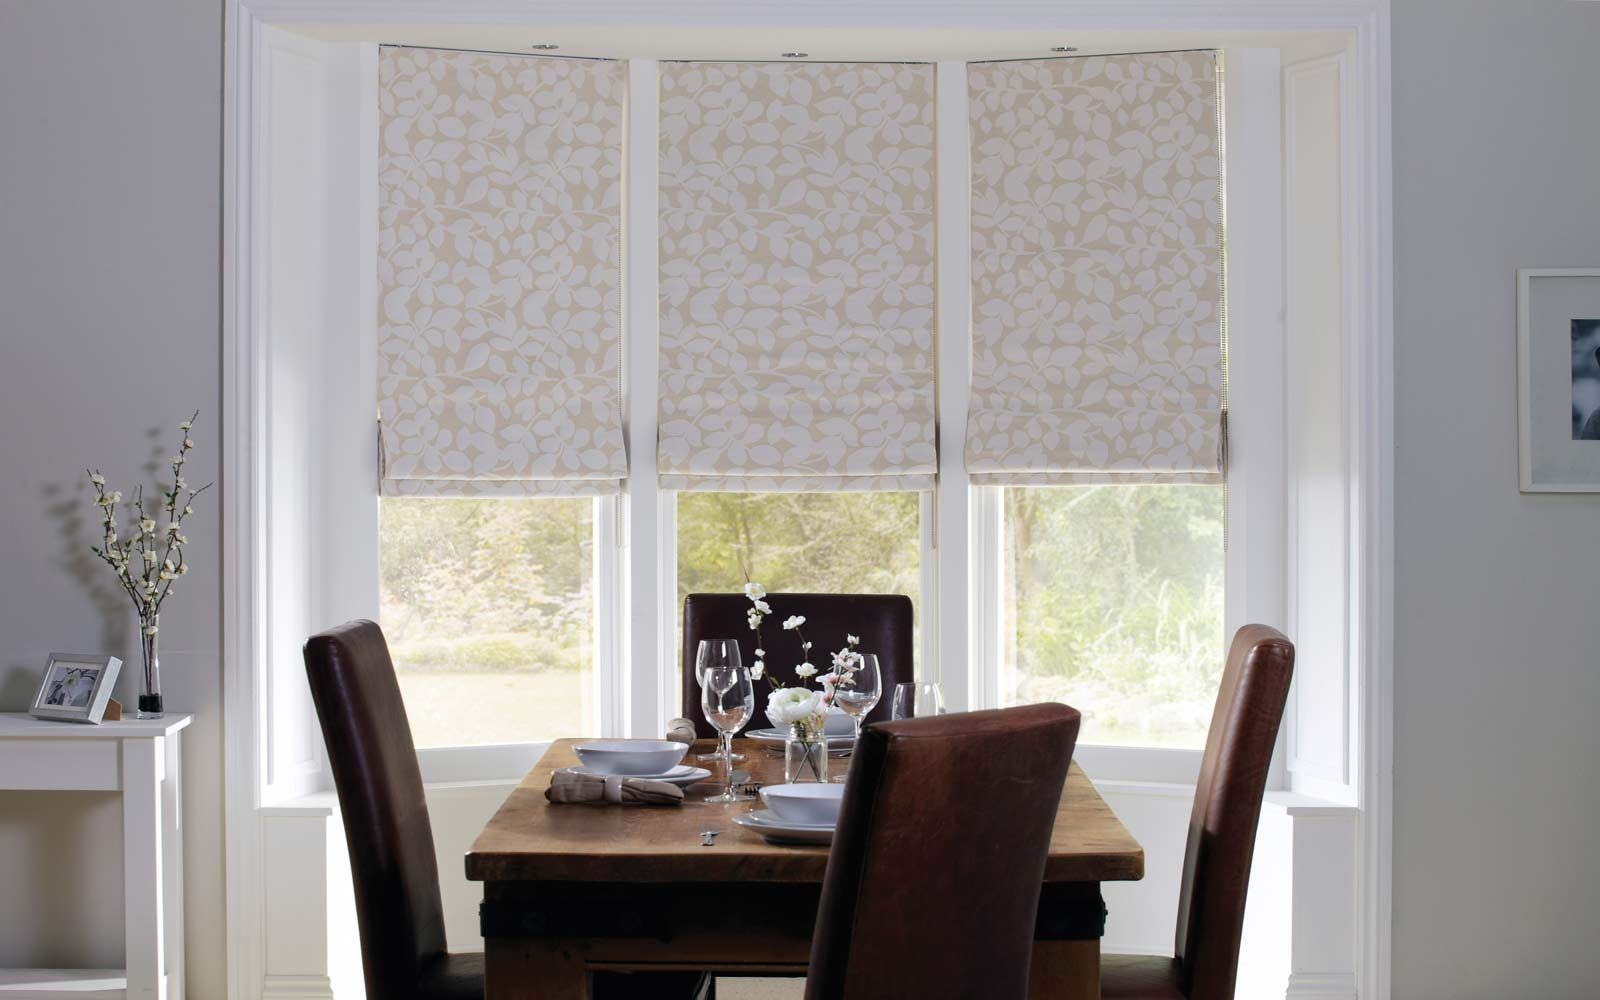 Roman Blinds Surrey Blinds Shutters With Regard To Roman Blackout Blinds (Image 15 of 15)